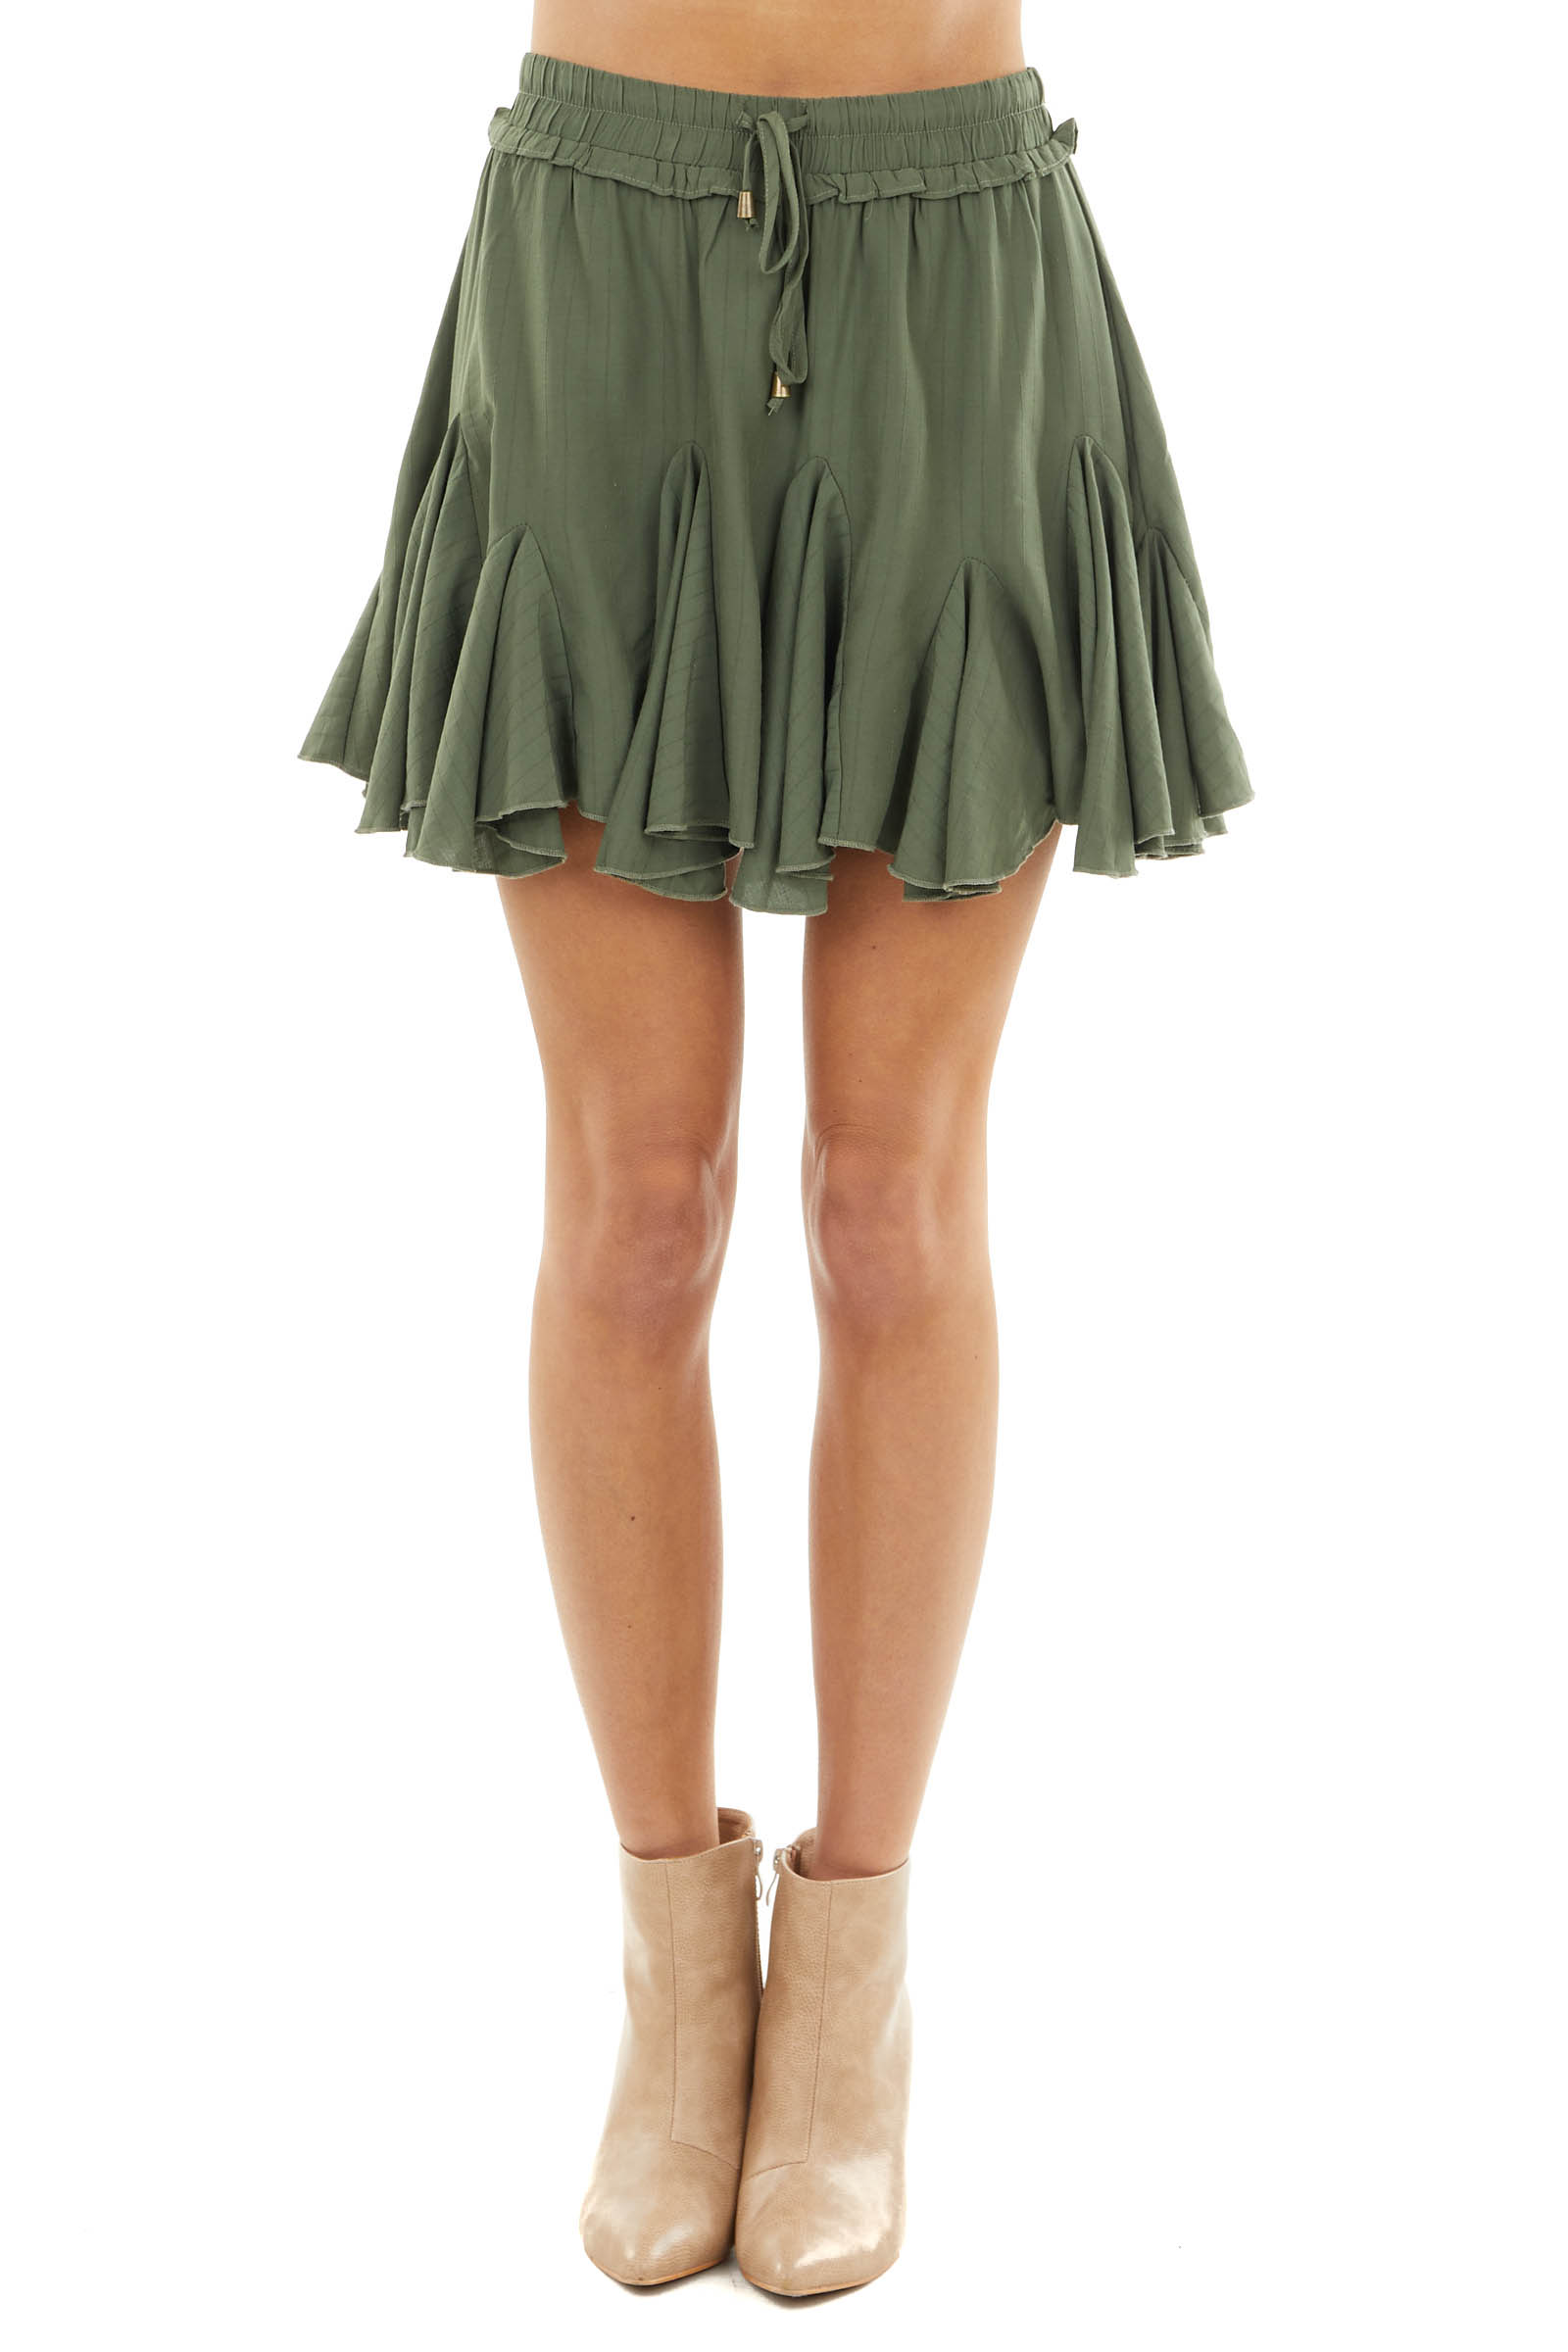 Olive Ruffled Mini Skirt with Elastic Waistband and Tie